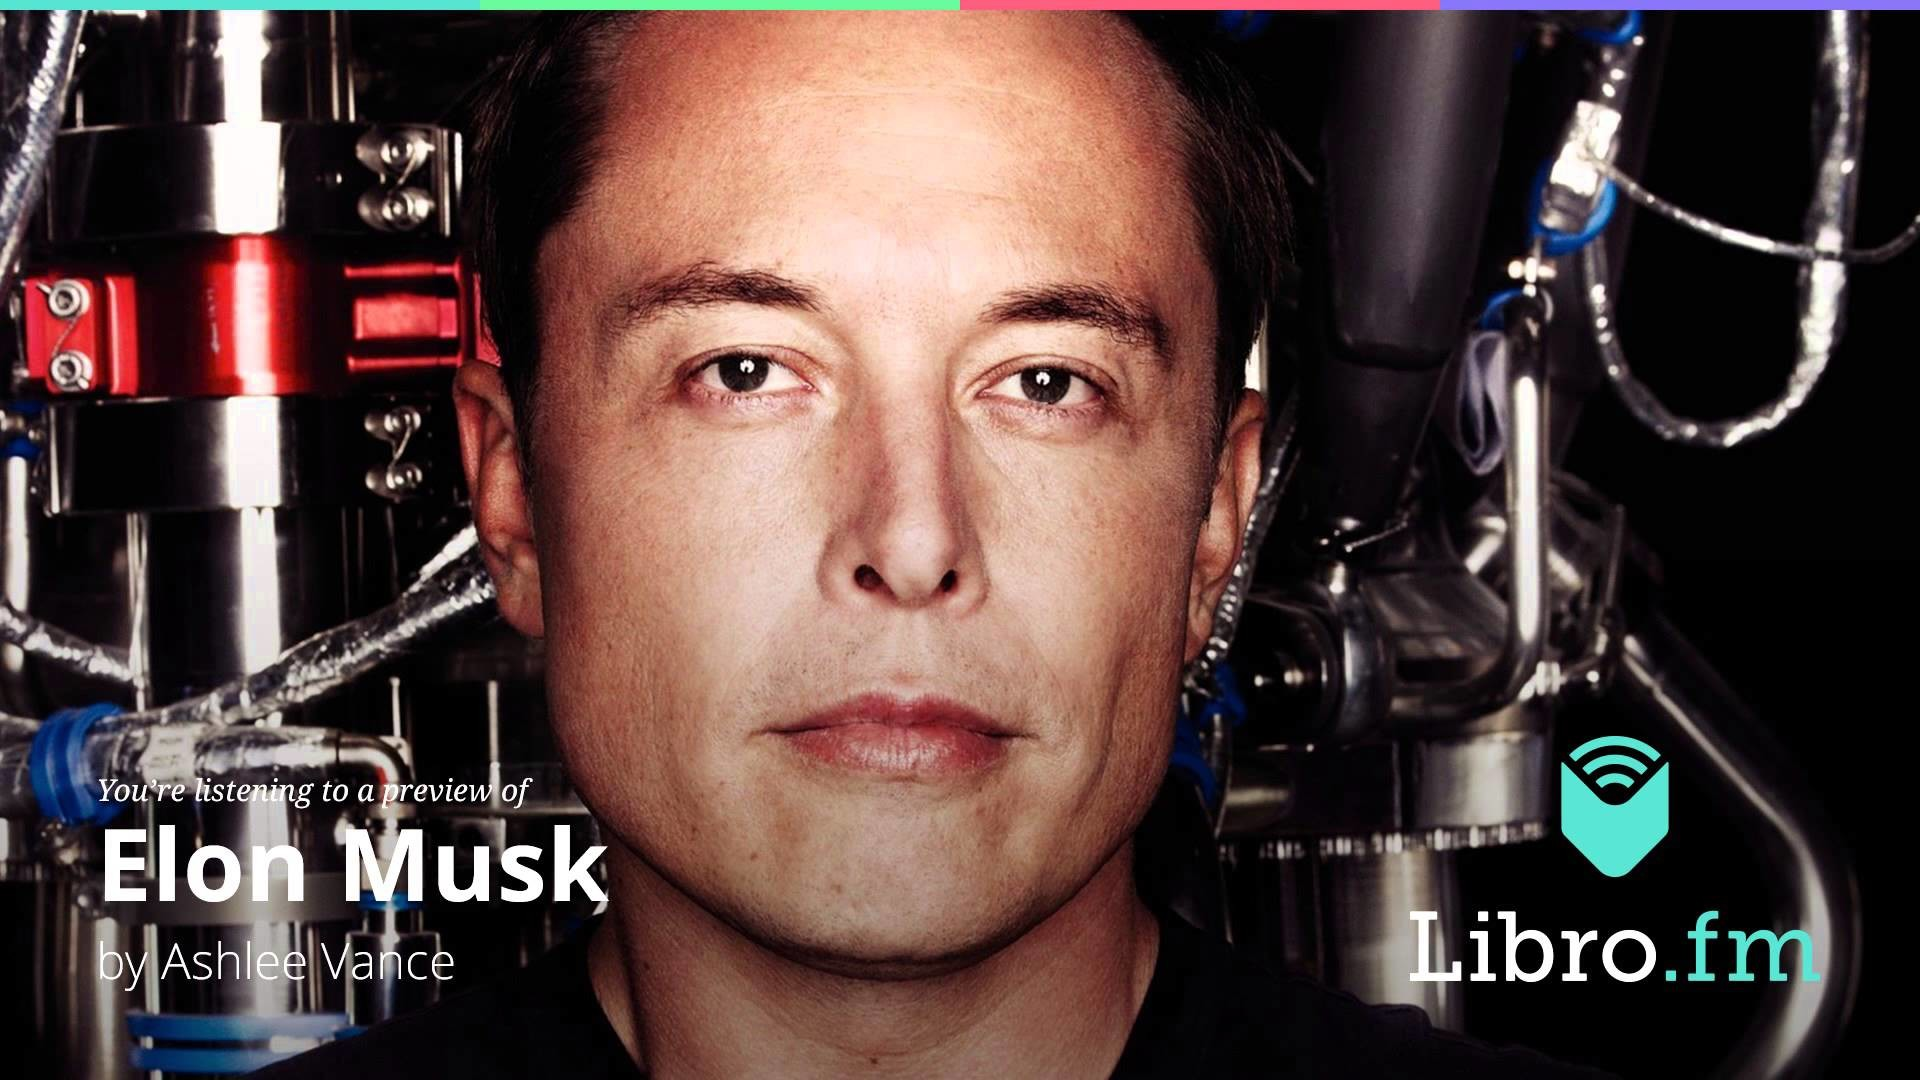 Elon Musk by Ashlee Vance